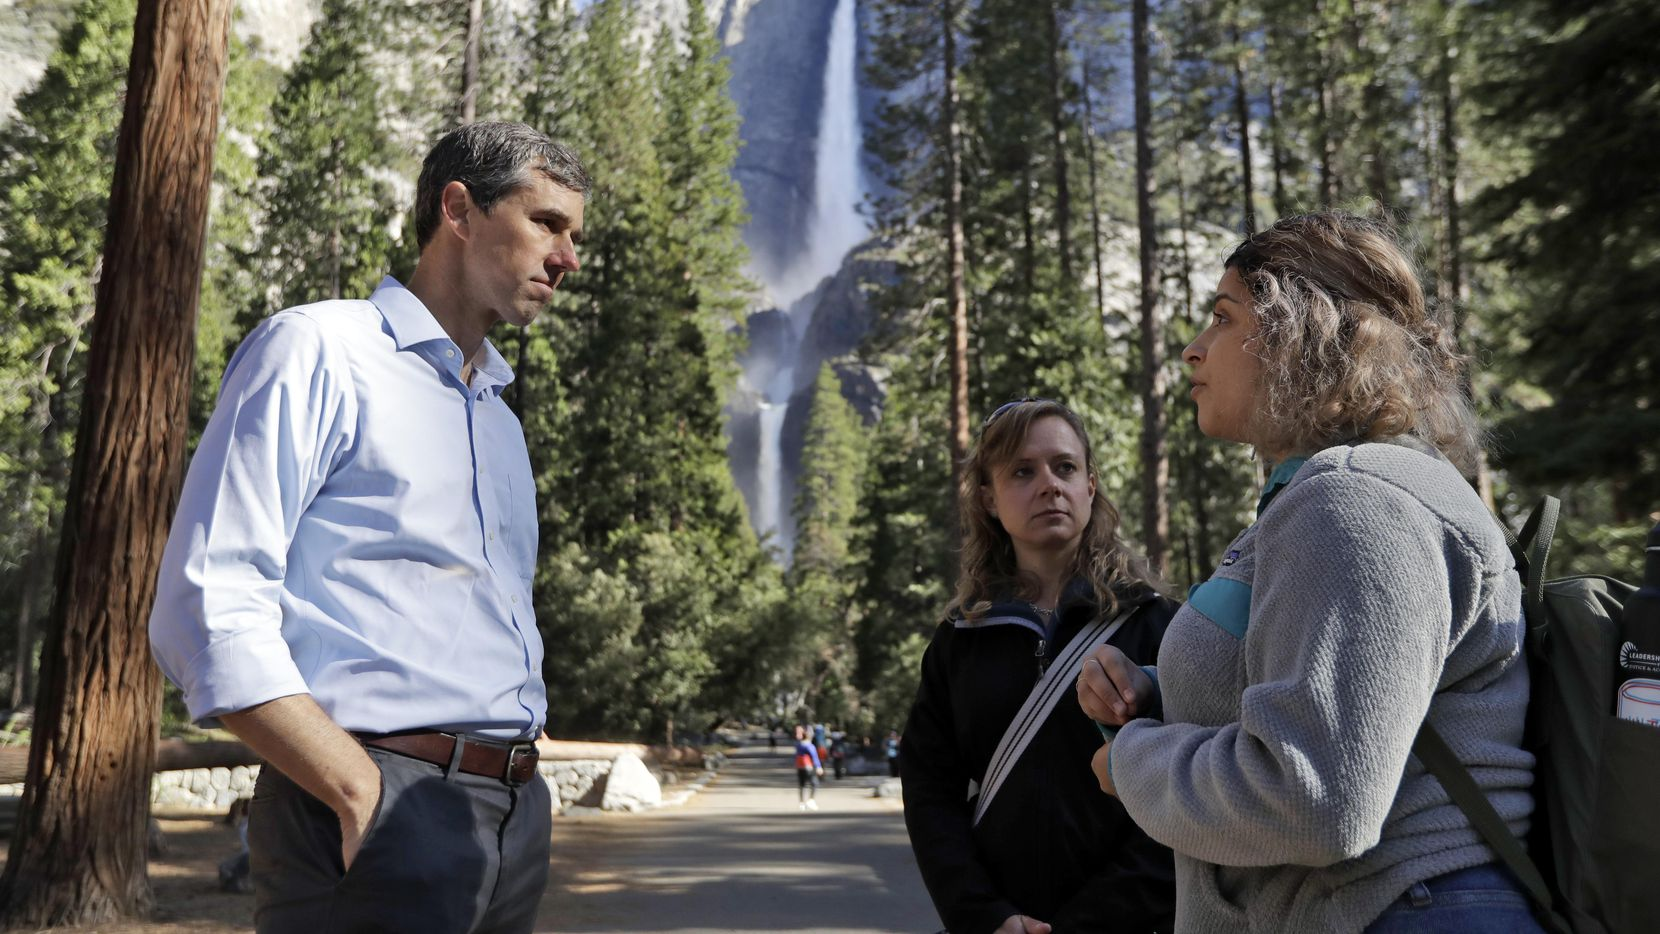 Beto O'Rourke platica con la directora de Sierra Nevada Research Stations, Anne Kelly, dentro del Yosemite National Park, Calif.(AP)